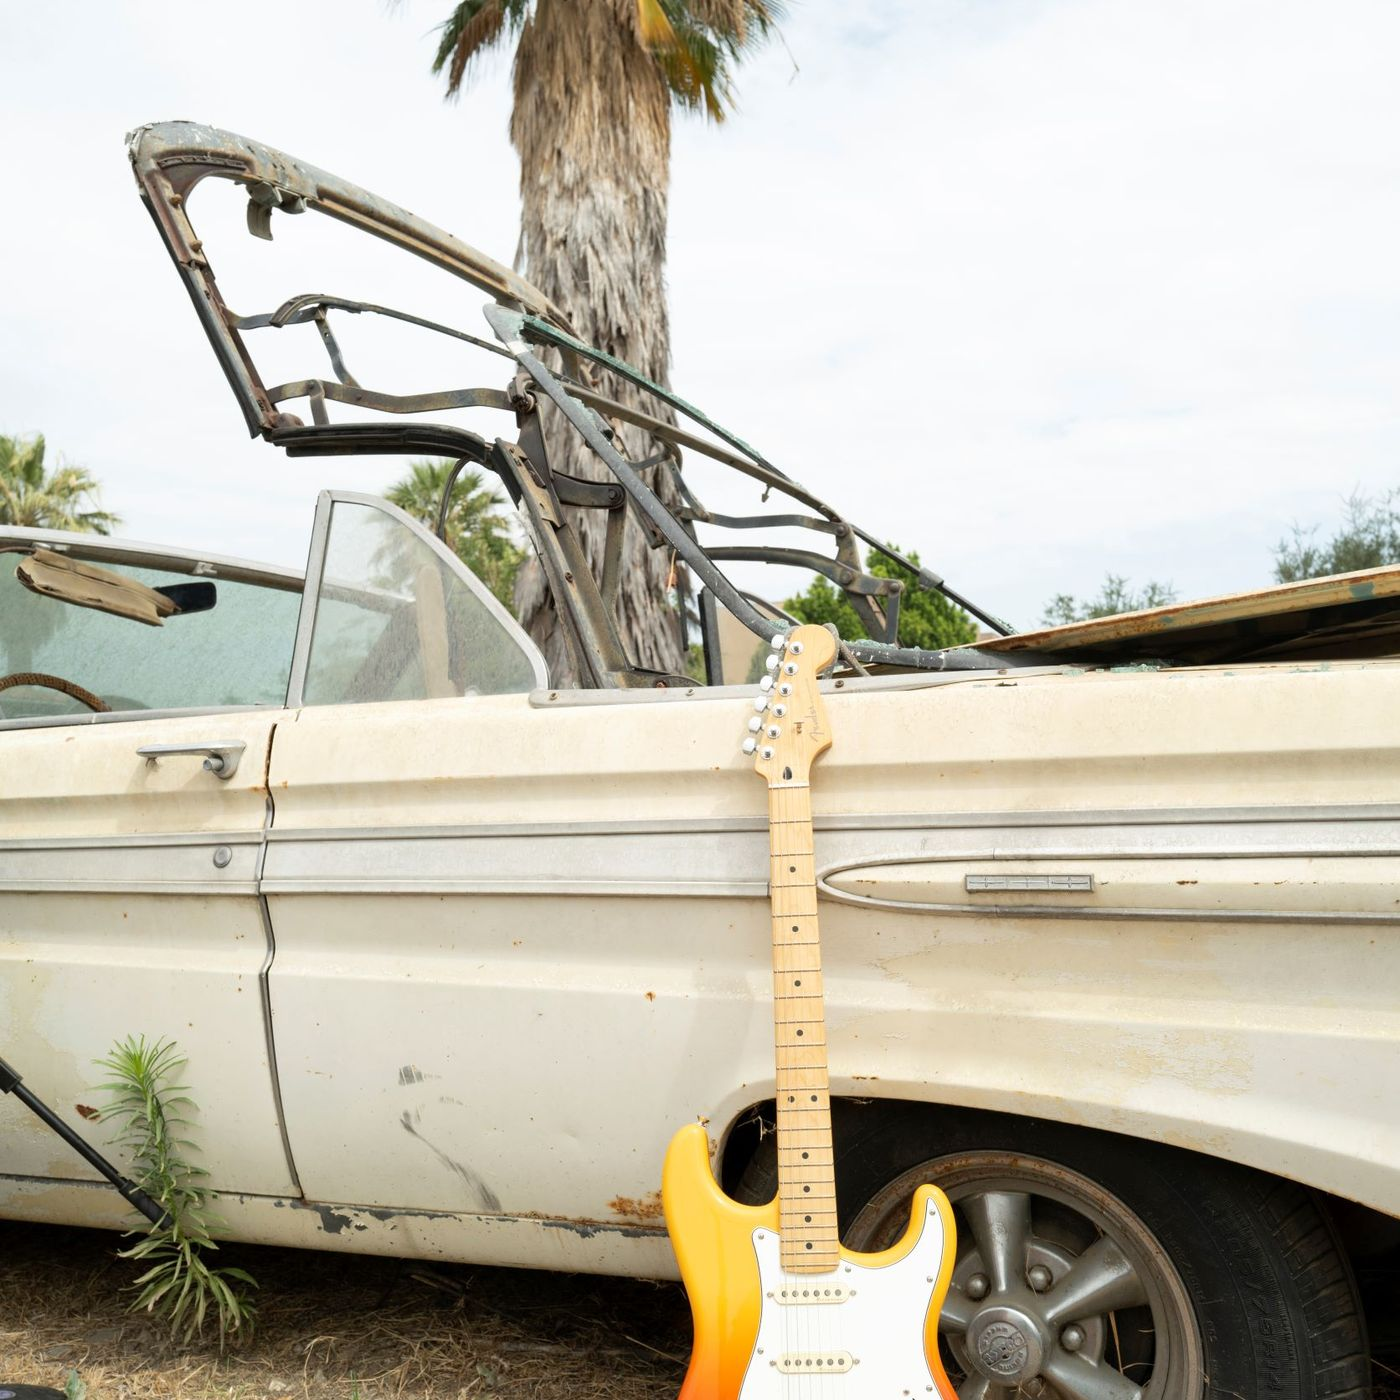 FENDER Launches Player Plus Series With Destroy Boys